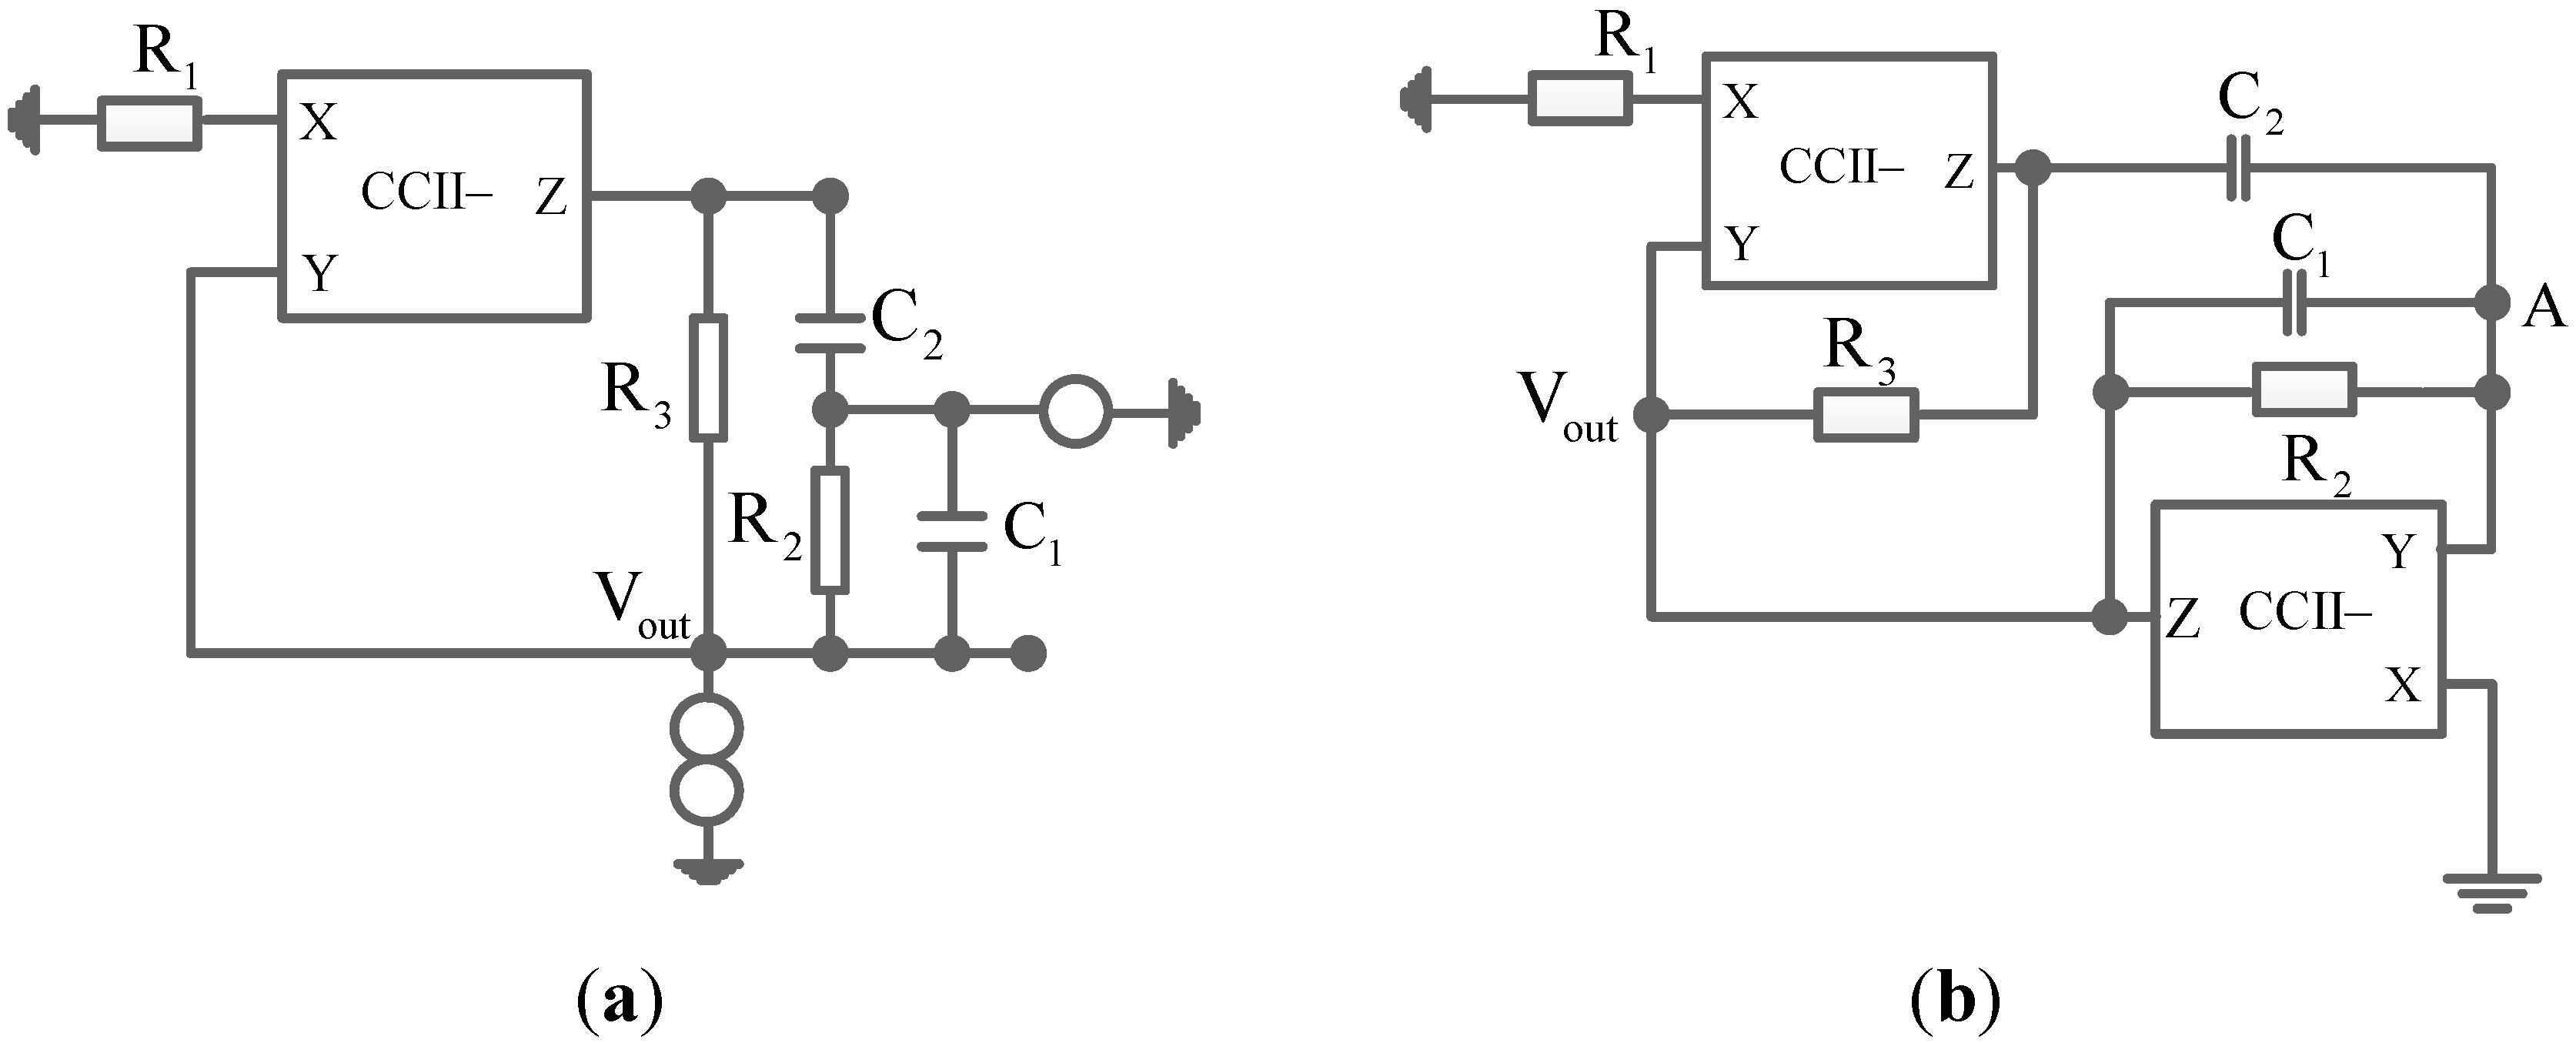 Applied Sciences Free Full Text Derivation Of Oscillators From Simple Band Stop Filter Circuit With Passive Components Is Shown Applsci 04 00482 G007 1024